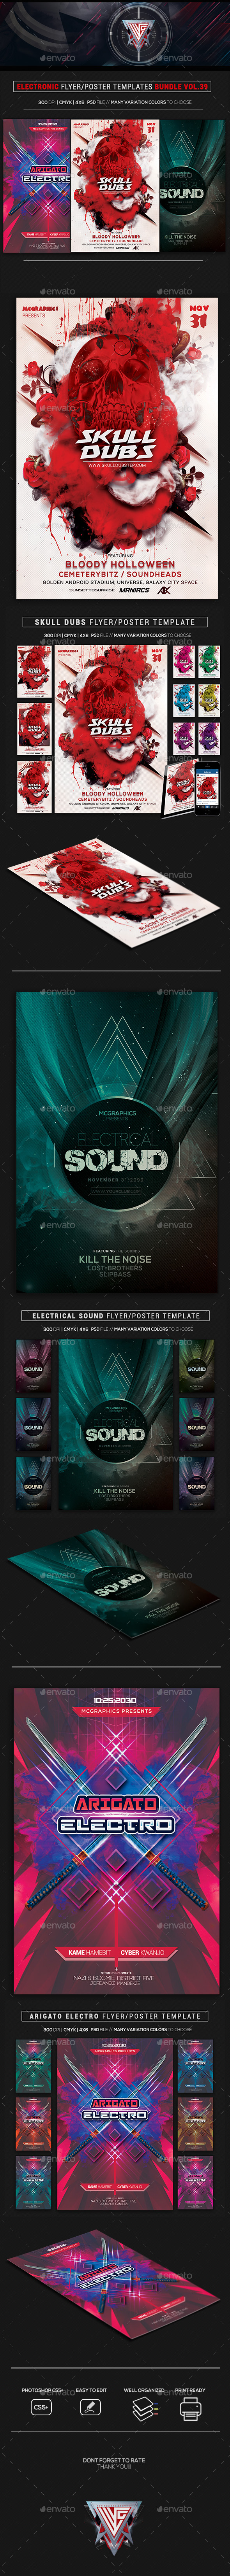 Electro Music Flyer Bundle Vol. 39 - Flyers Print Templates